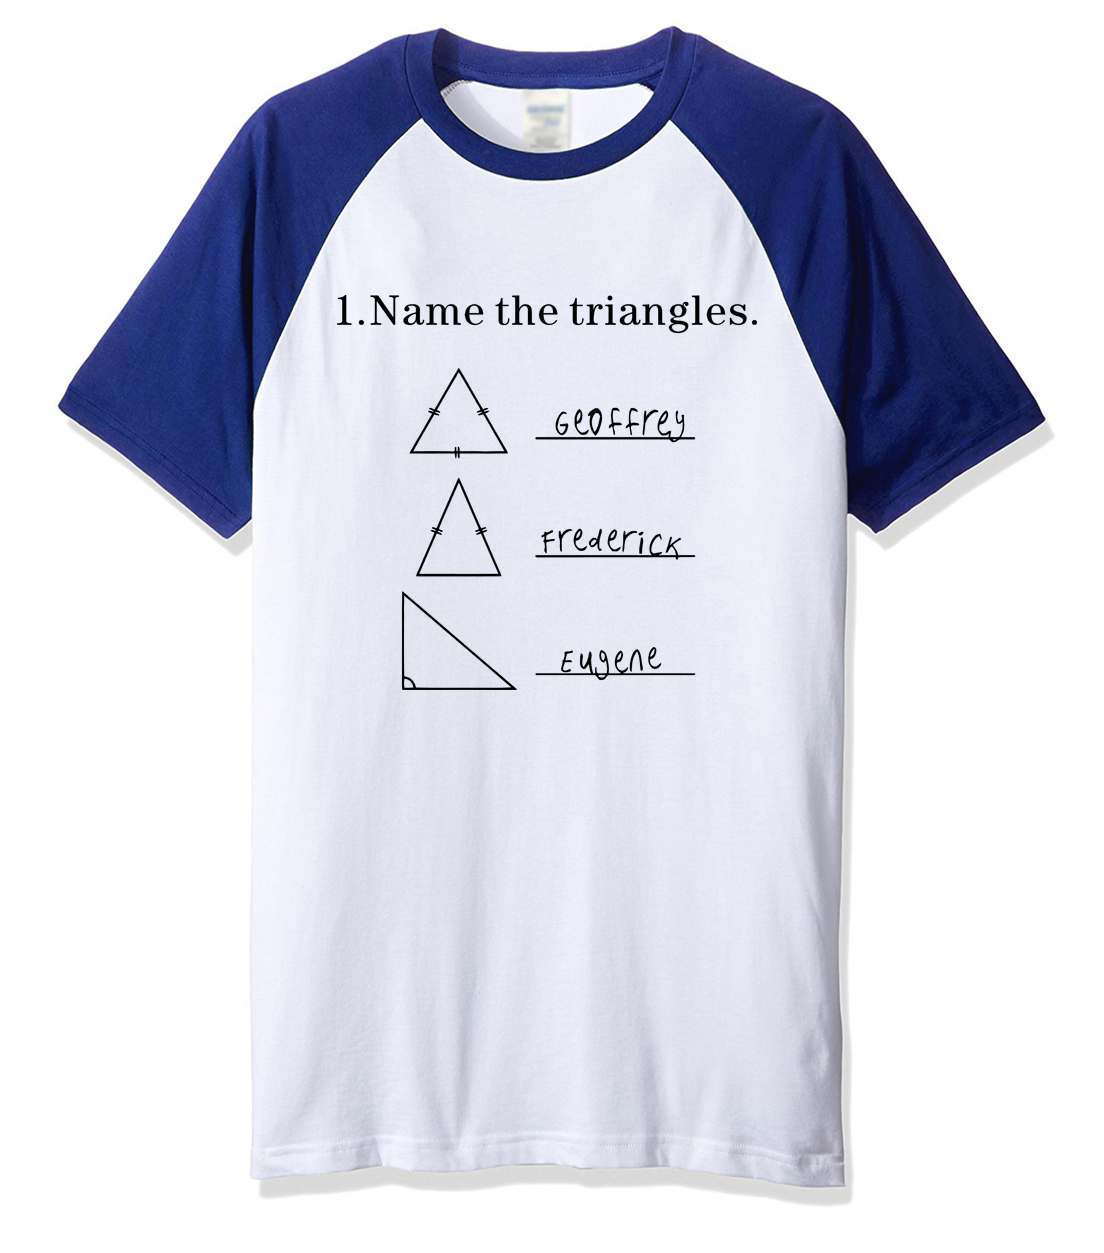 T shirt 2017 summer name the triangles men 39 s t shirts for Branded t shirt company names